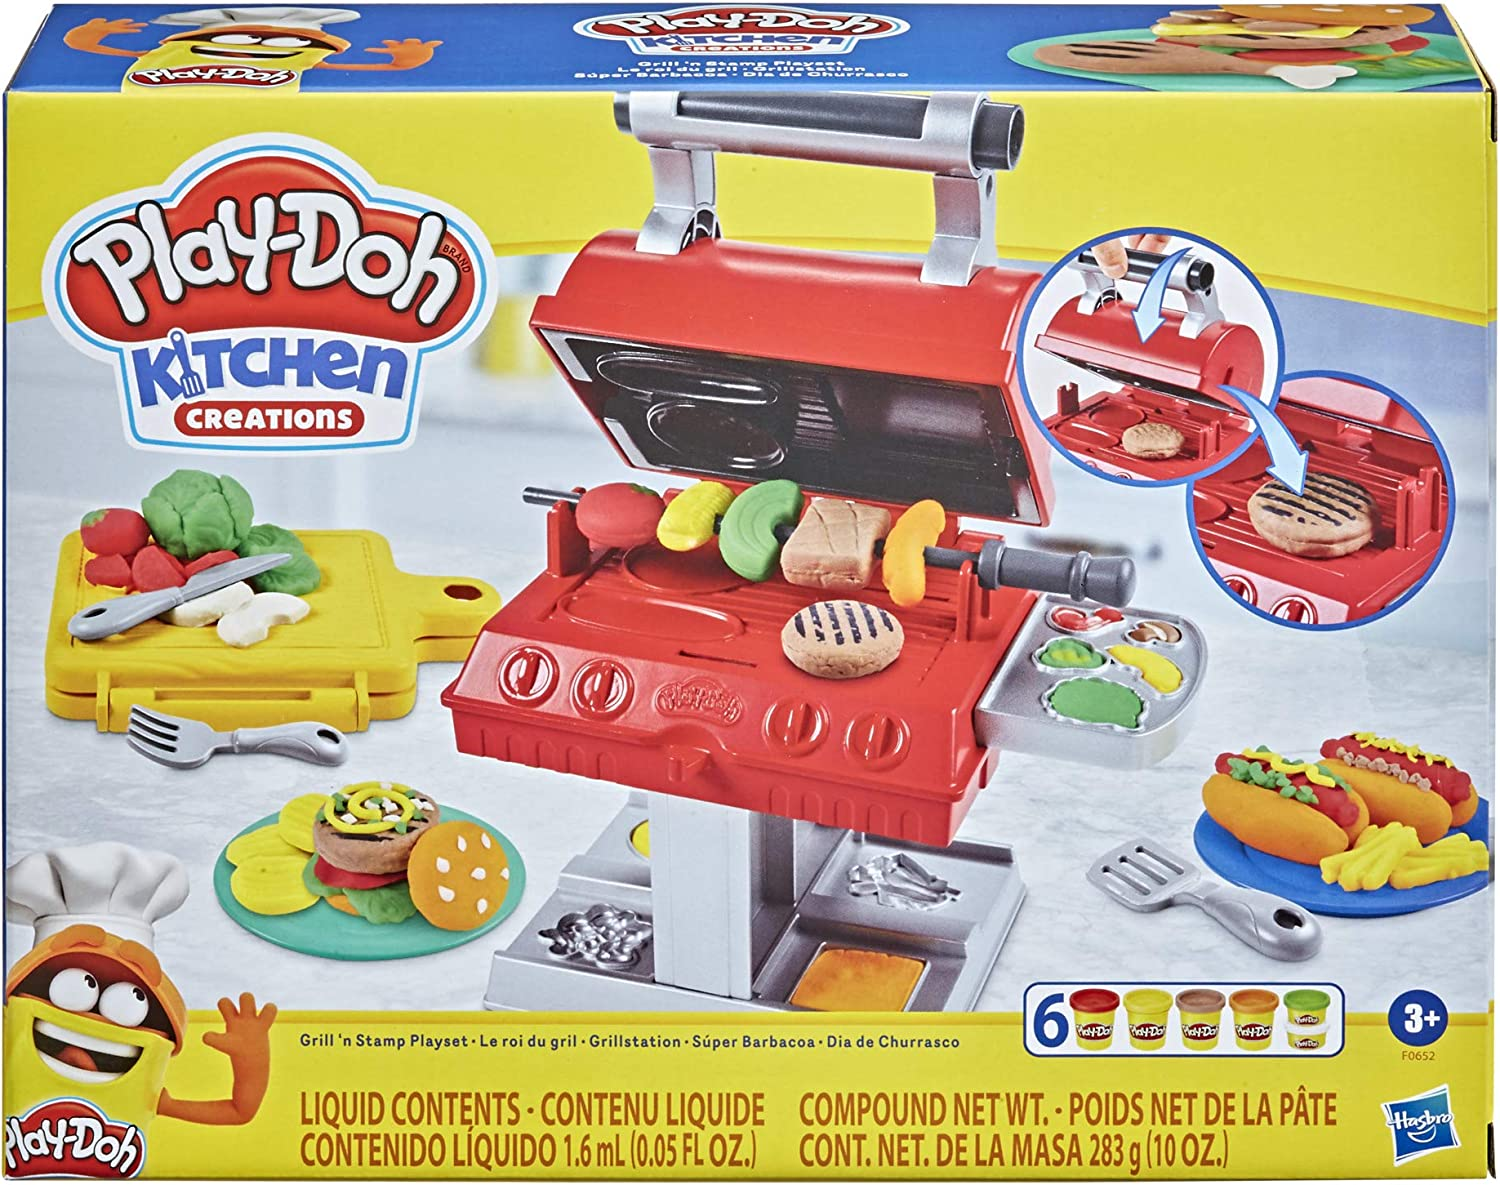 Play-Doh Kitchen Creations Grill 'n Stamp Playset for Kids 3 Years and Up with 6 Non-Toxic Modeling Compound Colors and 7 Barbecue Toy Accessories